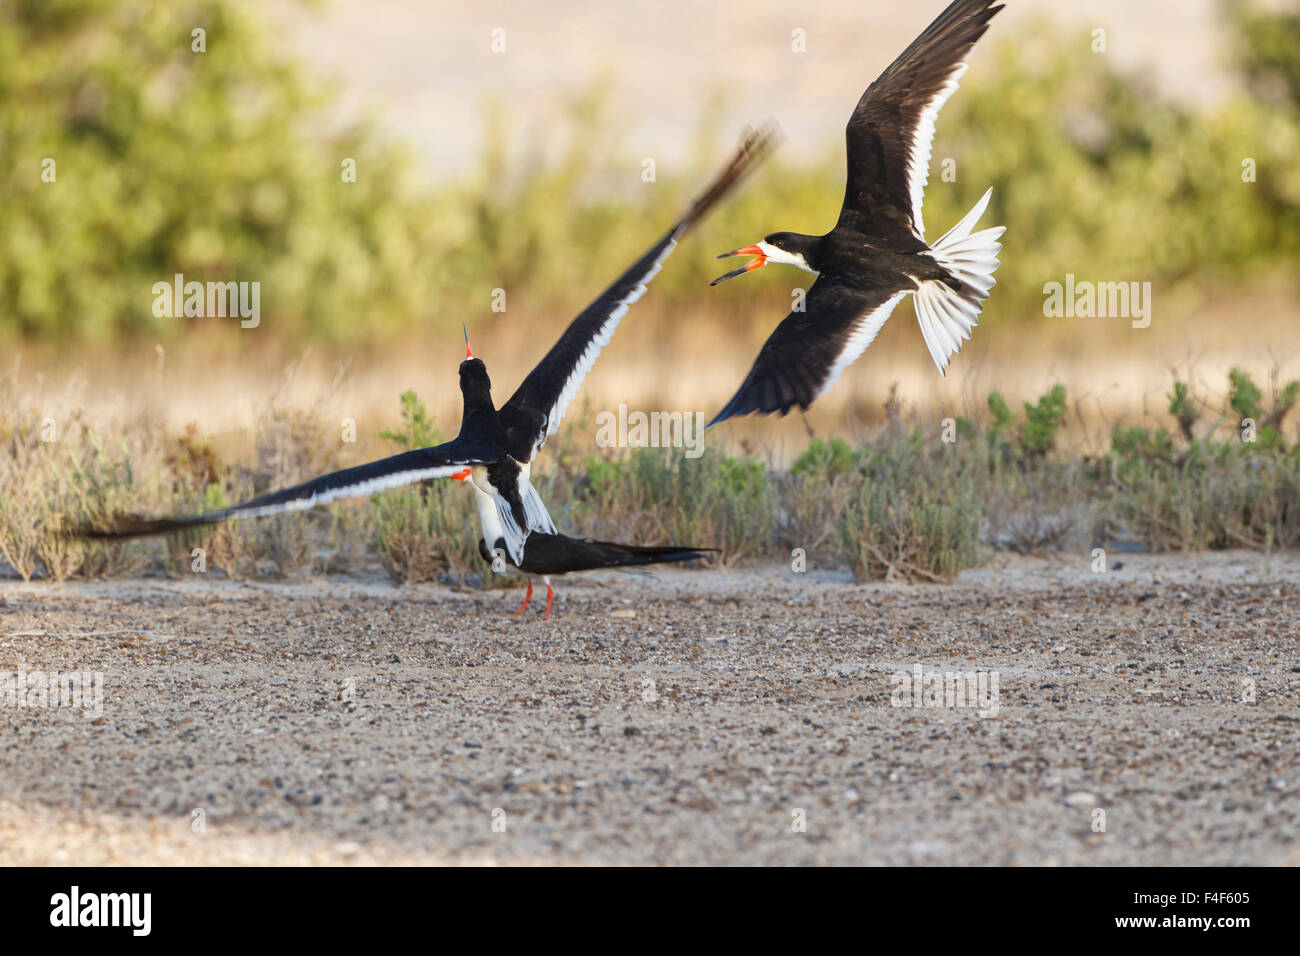 Port Isabel, Texas. Black Skimmers in courtship flight - Stock Image